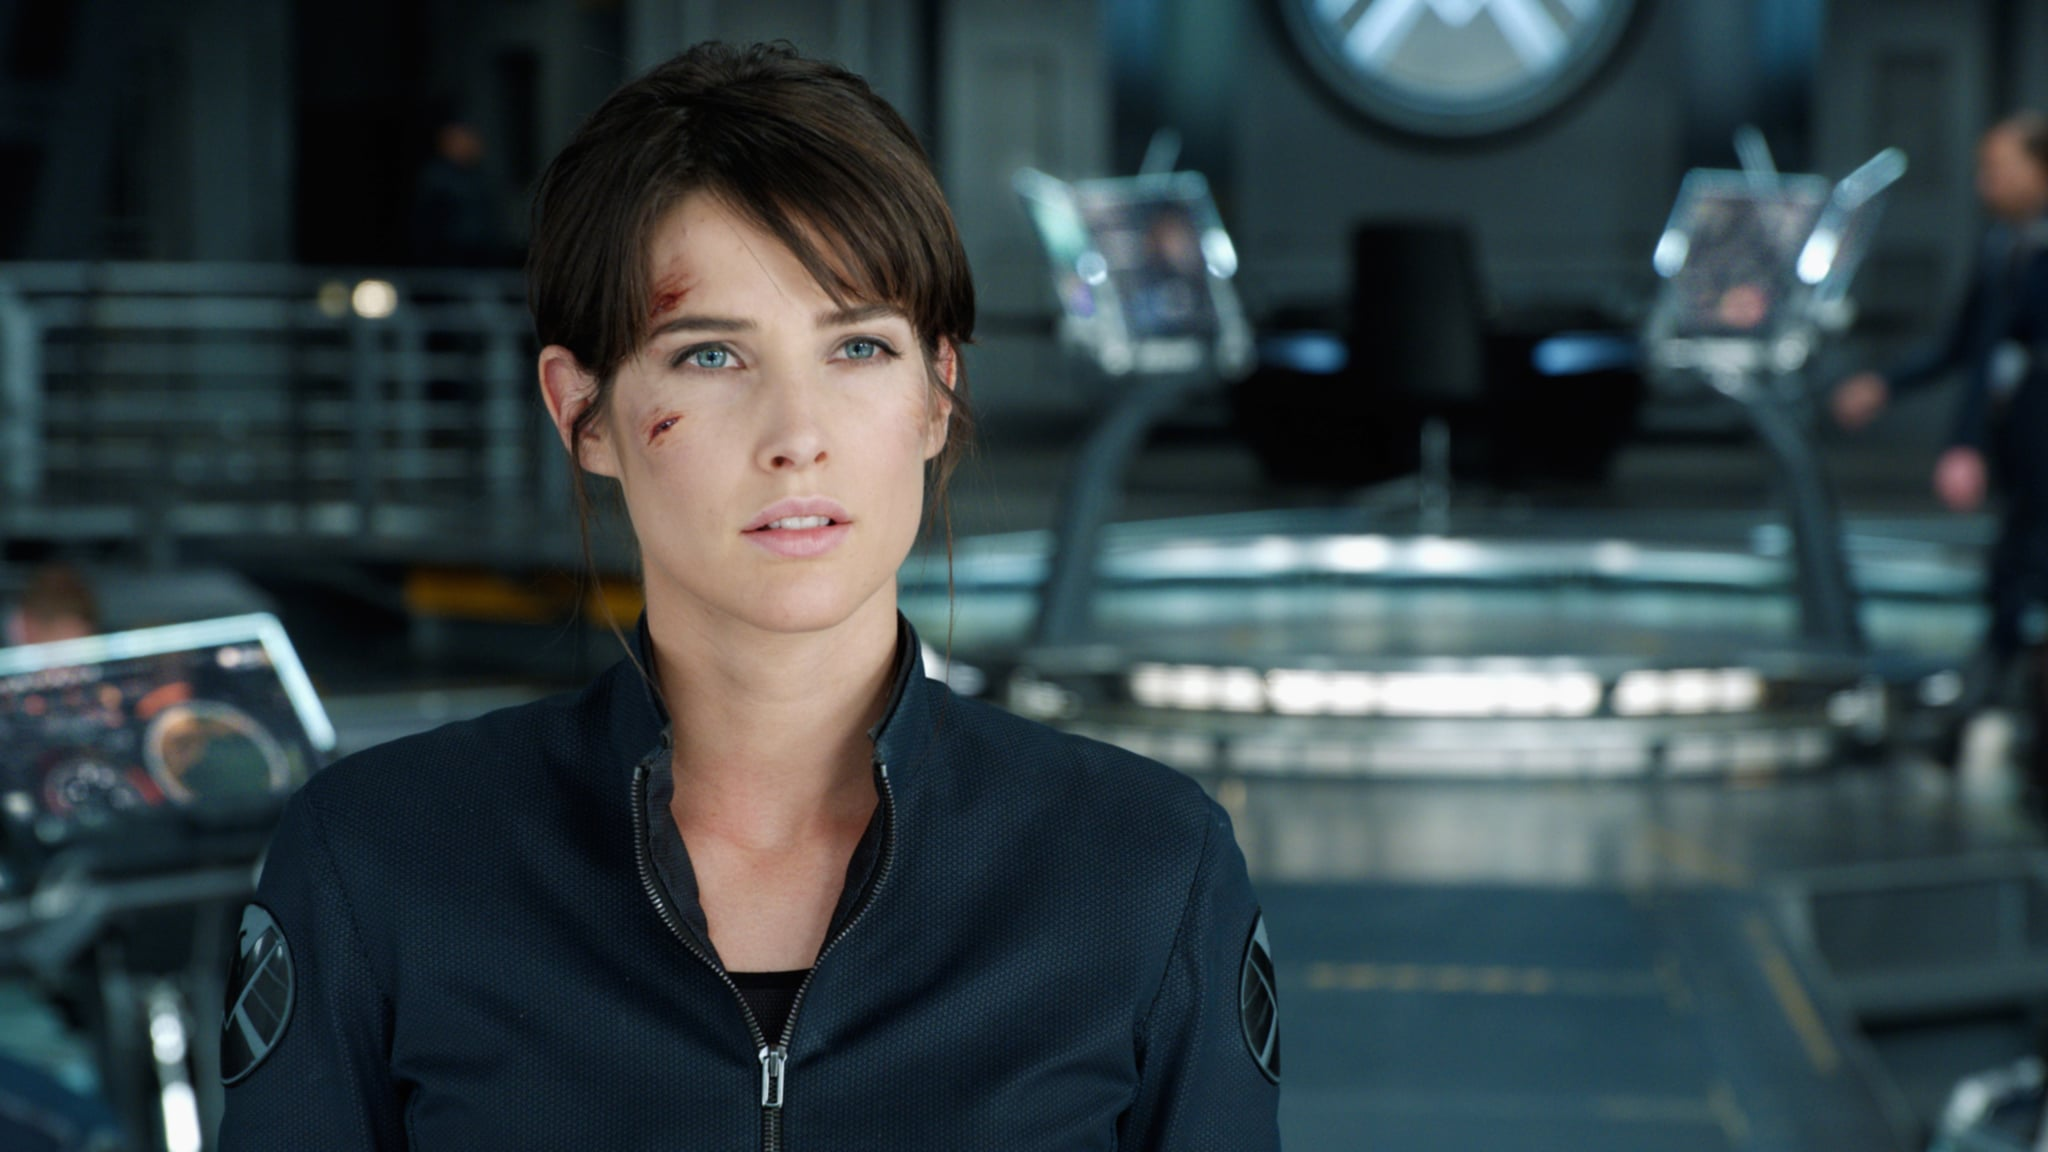 THE AVENGERS, Cobie Smulders, 2012, Walt Disney Studios Motion Pictures/courtesy Everett Collection